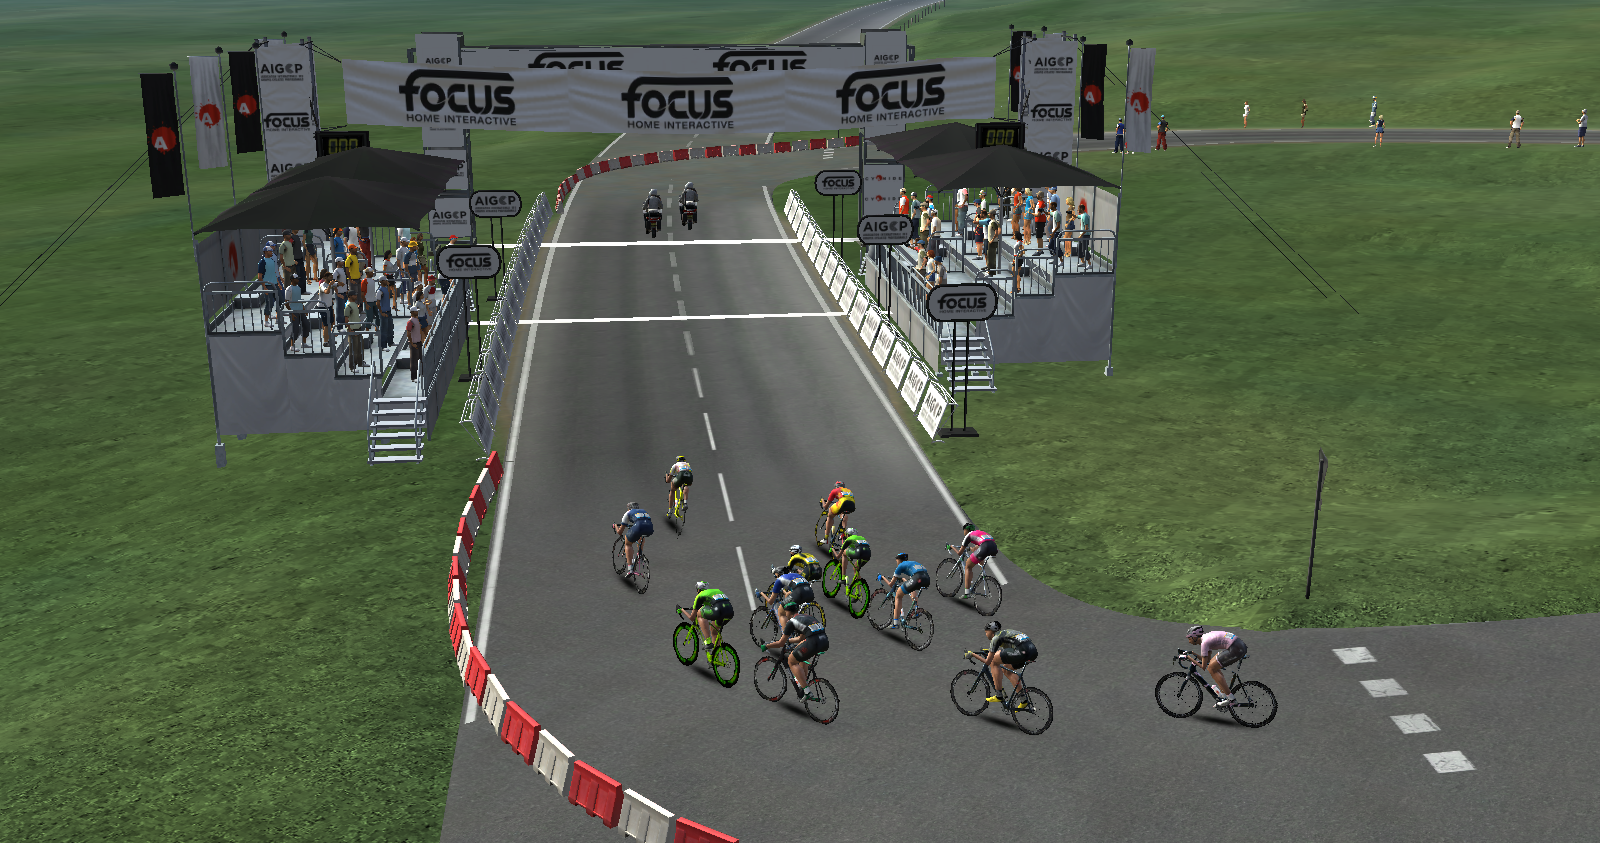 pcmdaily.com/images/mg/2019/Races/PTHC/Rheden/41-5.png